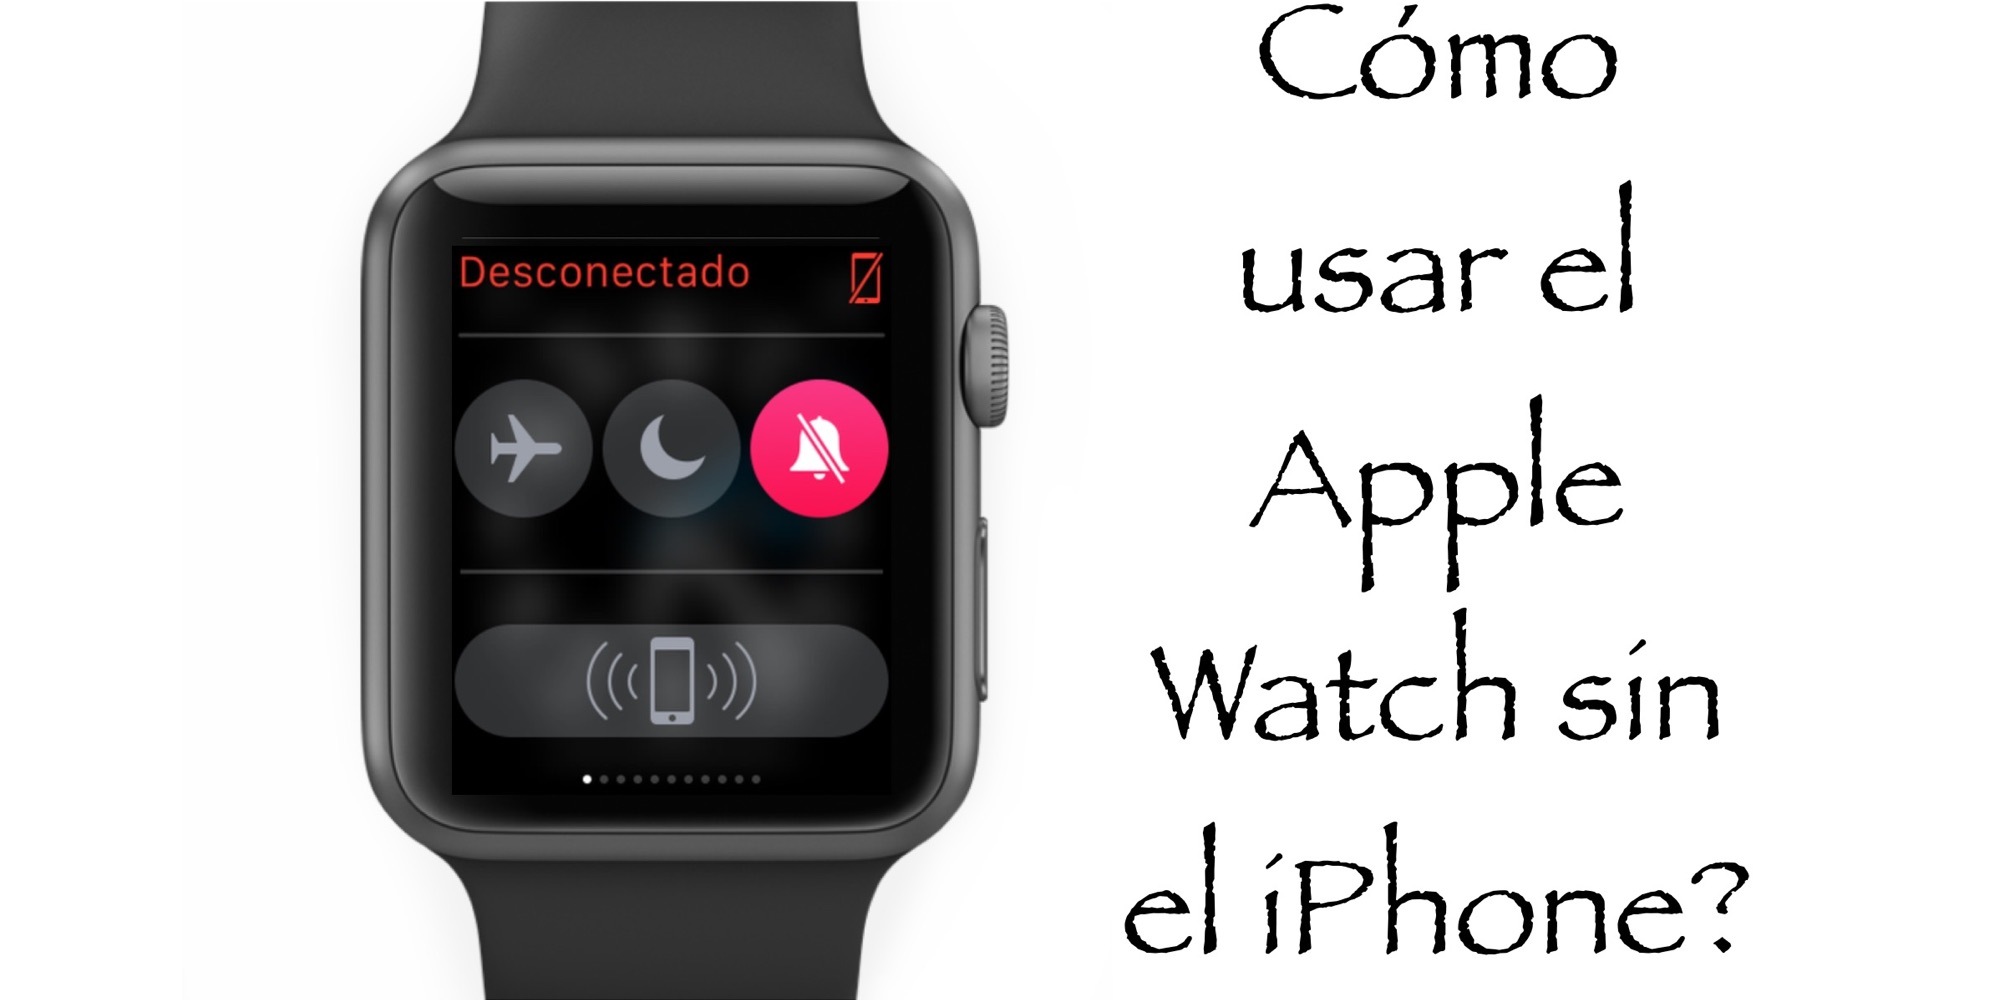 apple iphone watch c 243 mo usar el apple el iphone hablando de manzanas 10146